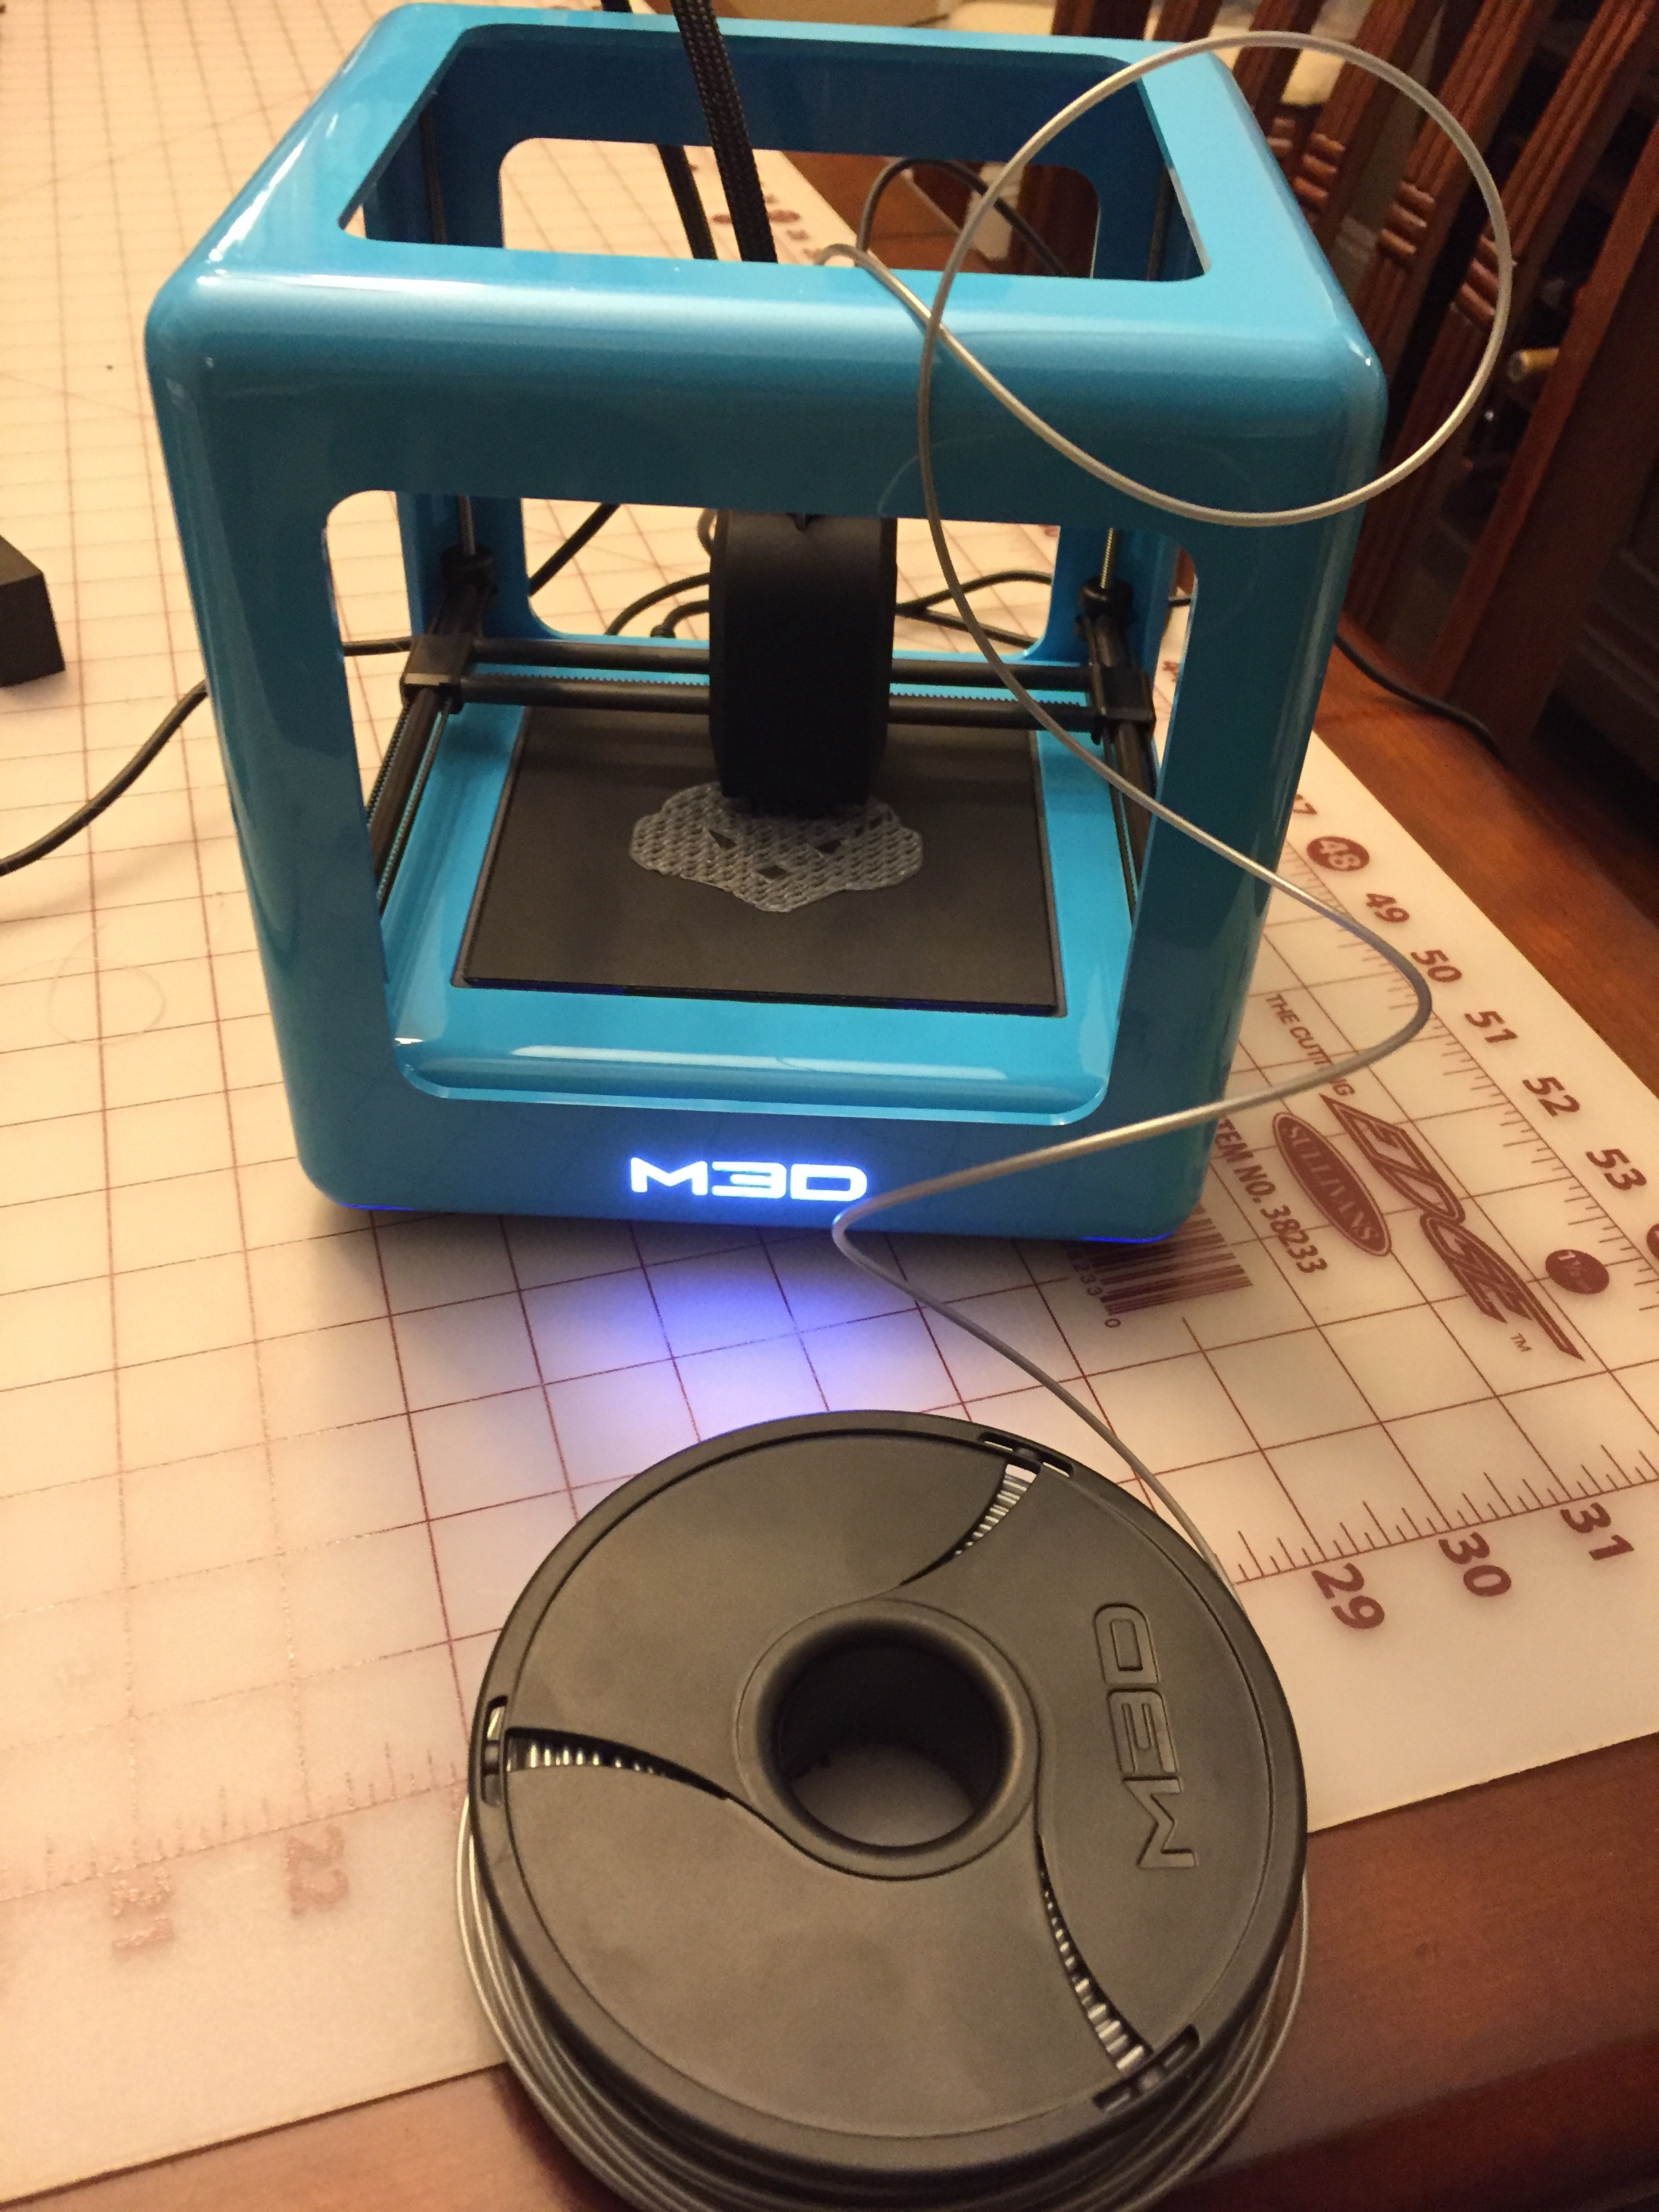 Printing with the new M3D